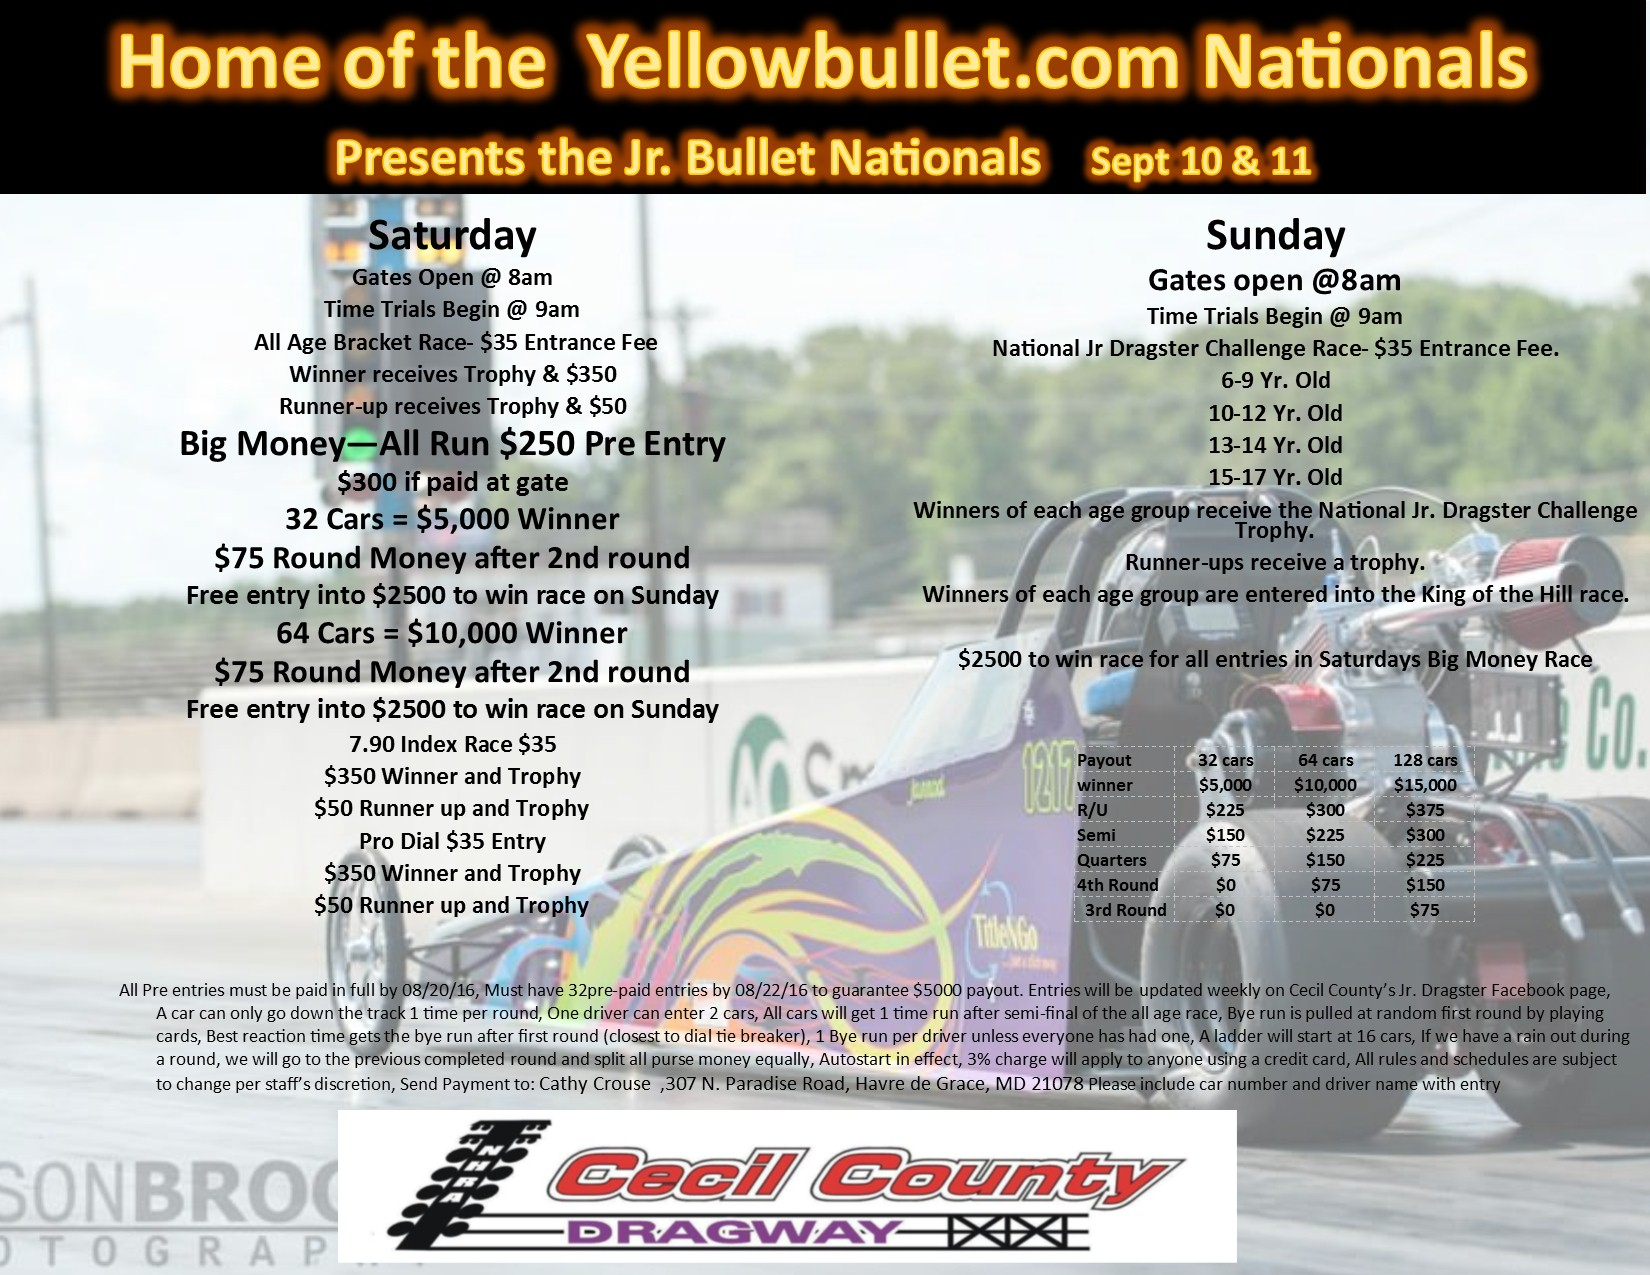 Jr. Bullet Nationals